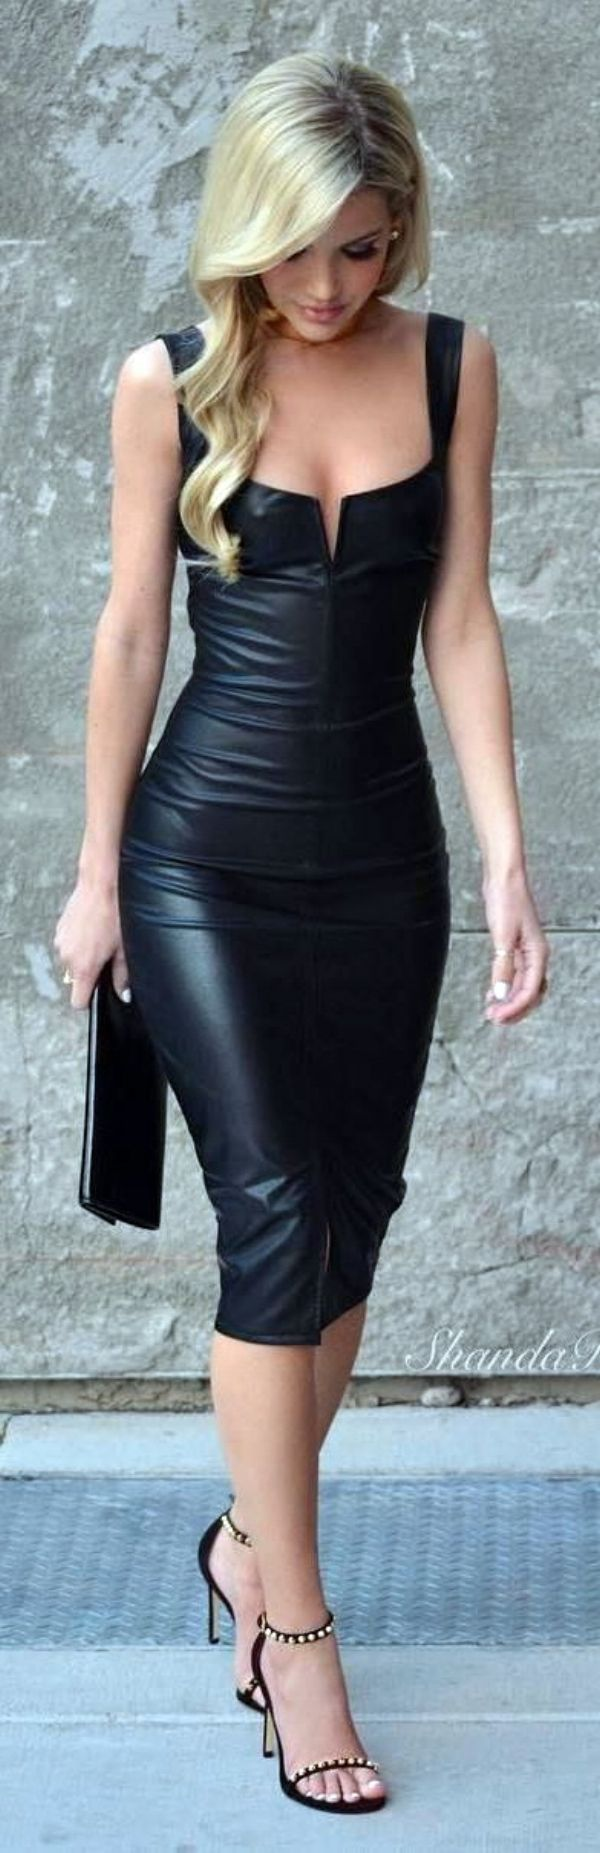 little black dress styles to sample this year enjoy the new